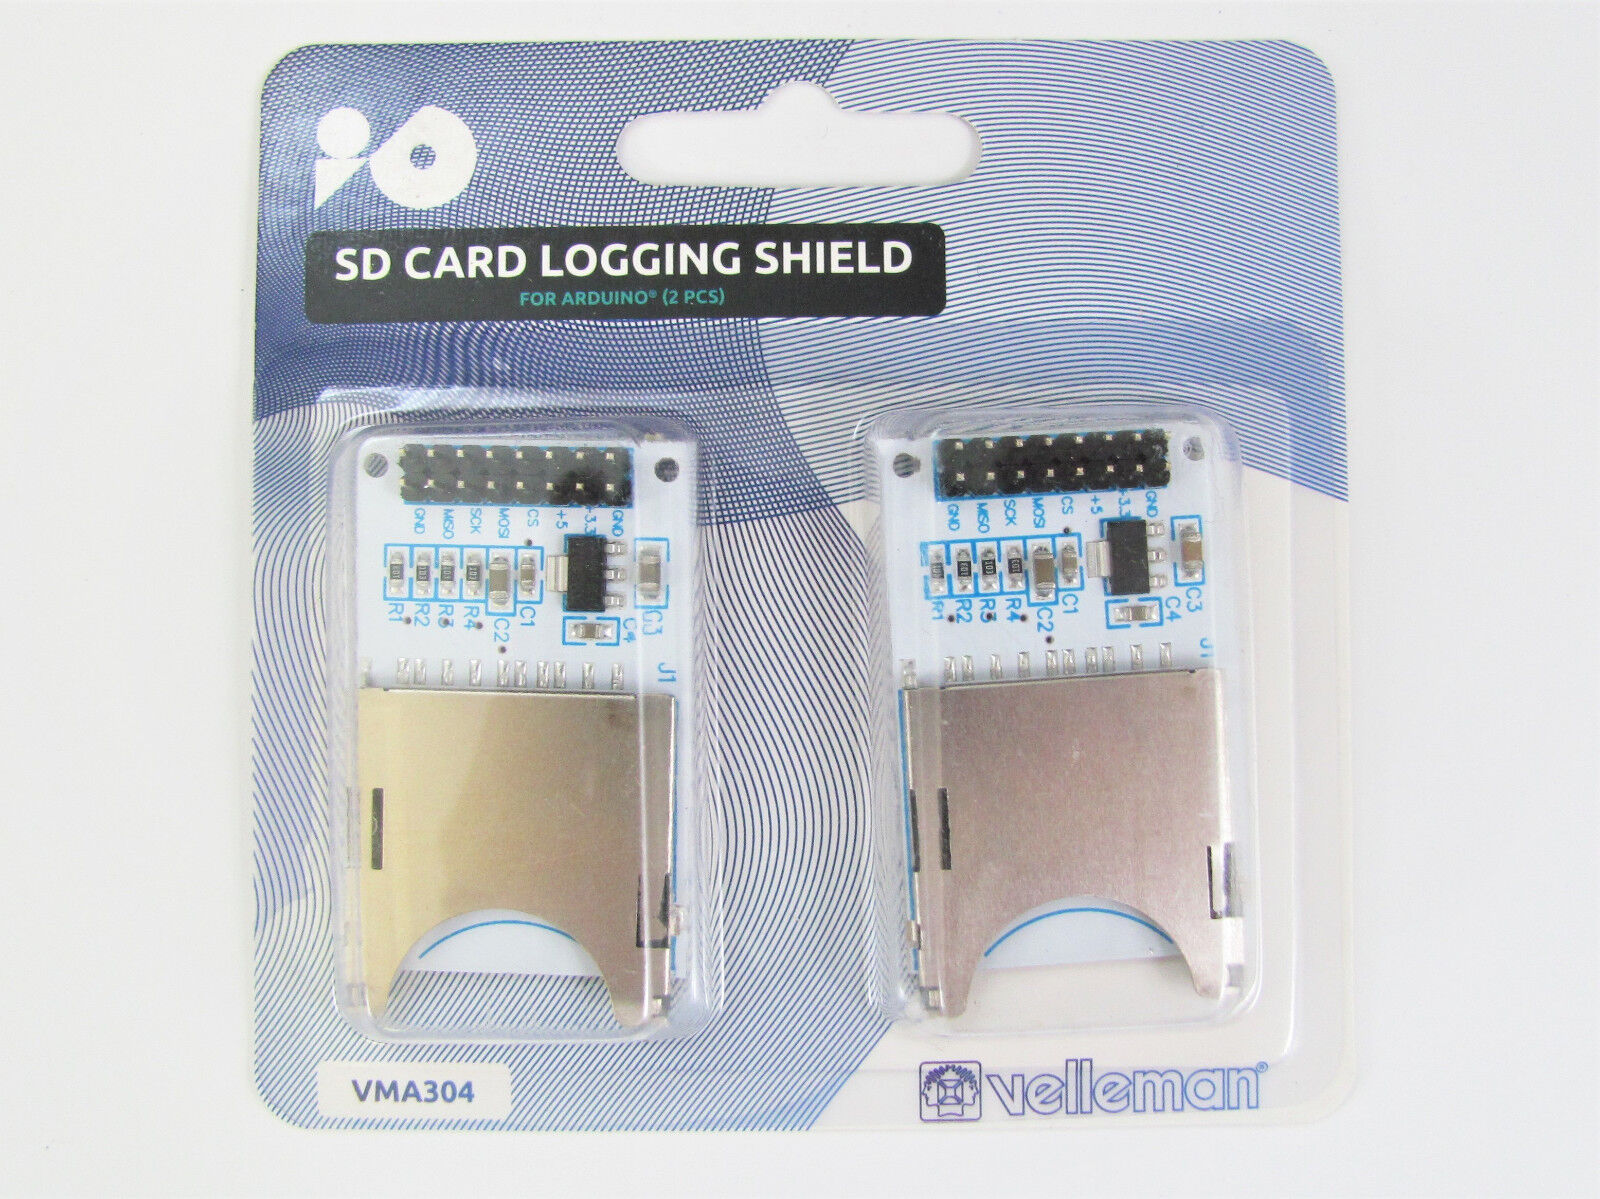 2x Sd Card Logging Shield For Arduino Velleman Vma304 Ebay Wiring Norton Secured Powered By Verisign